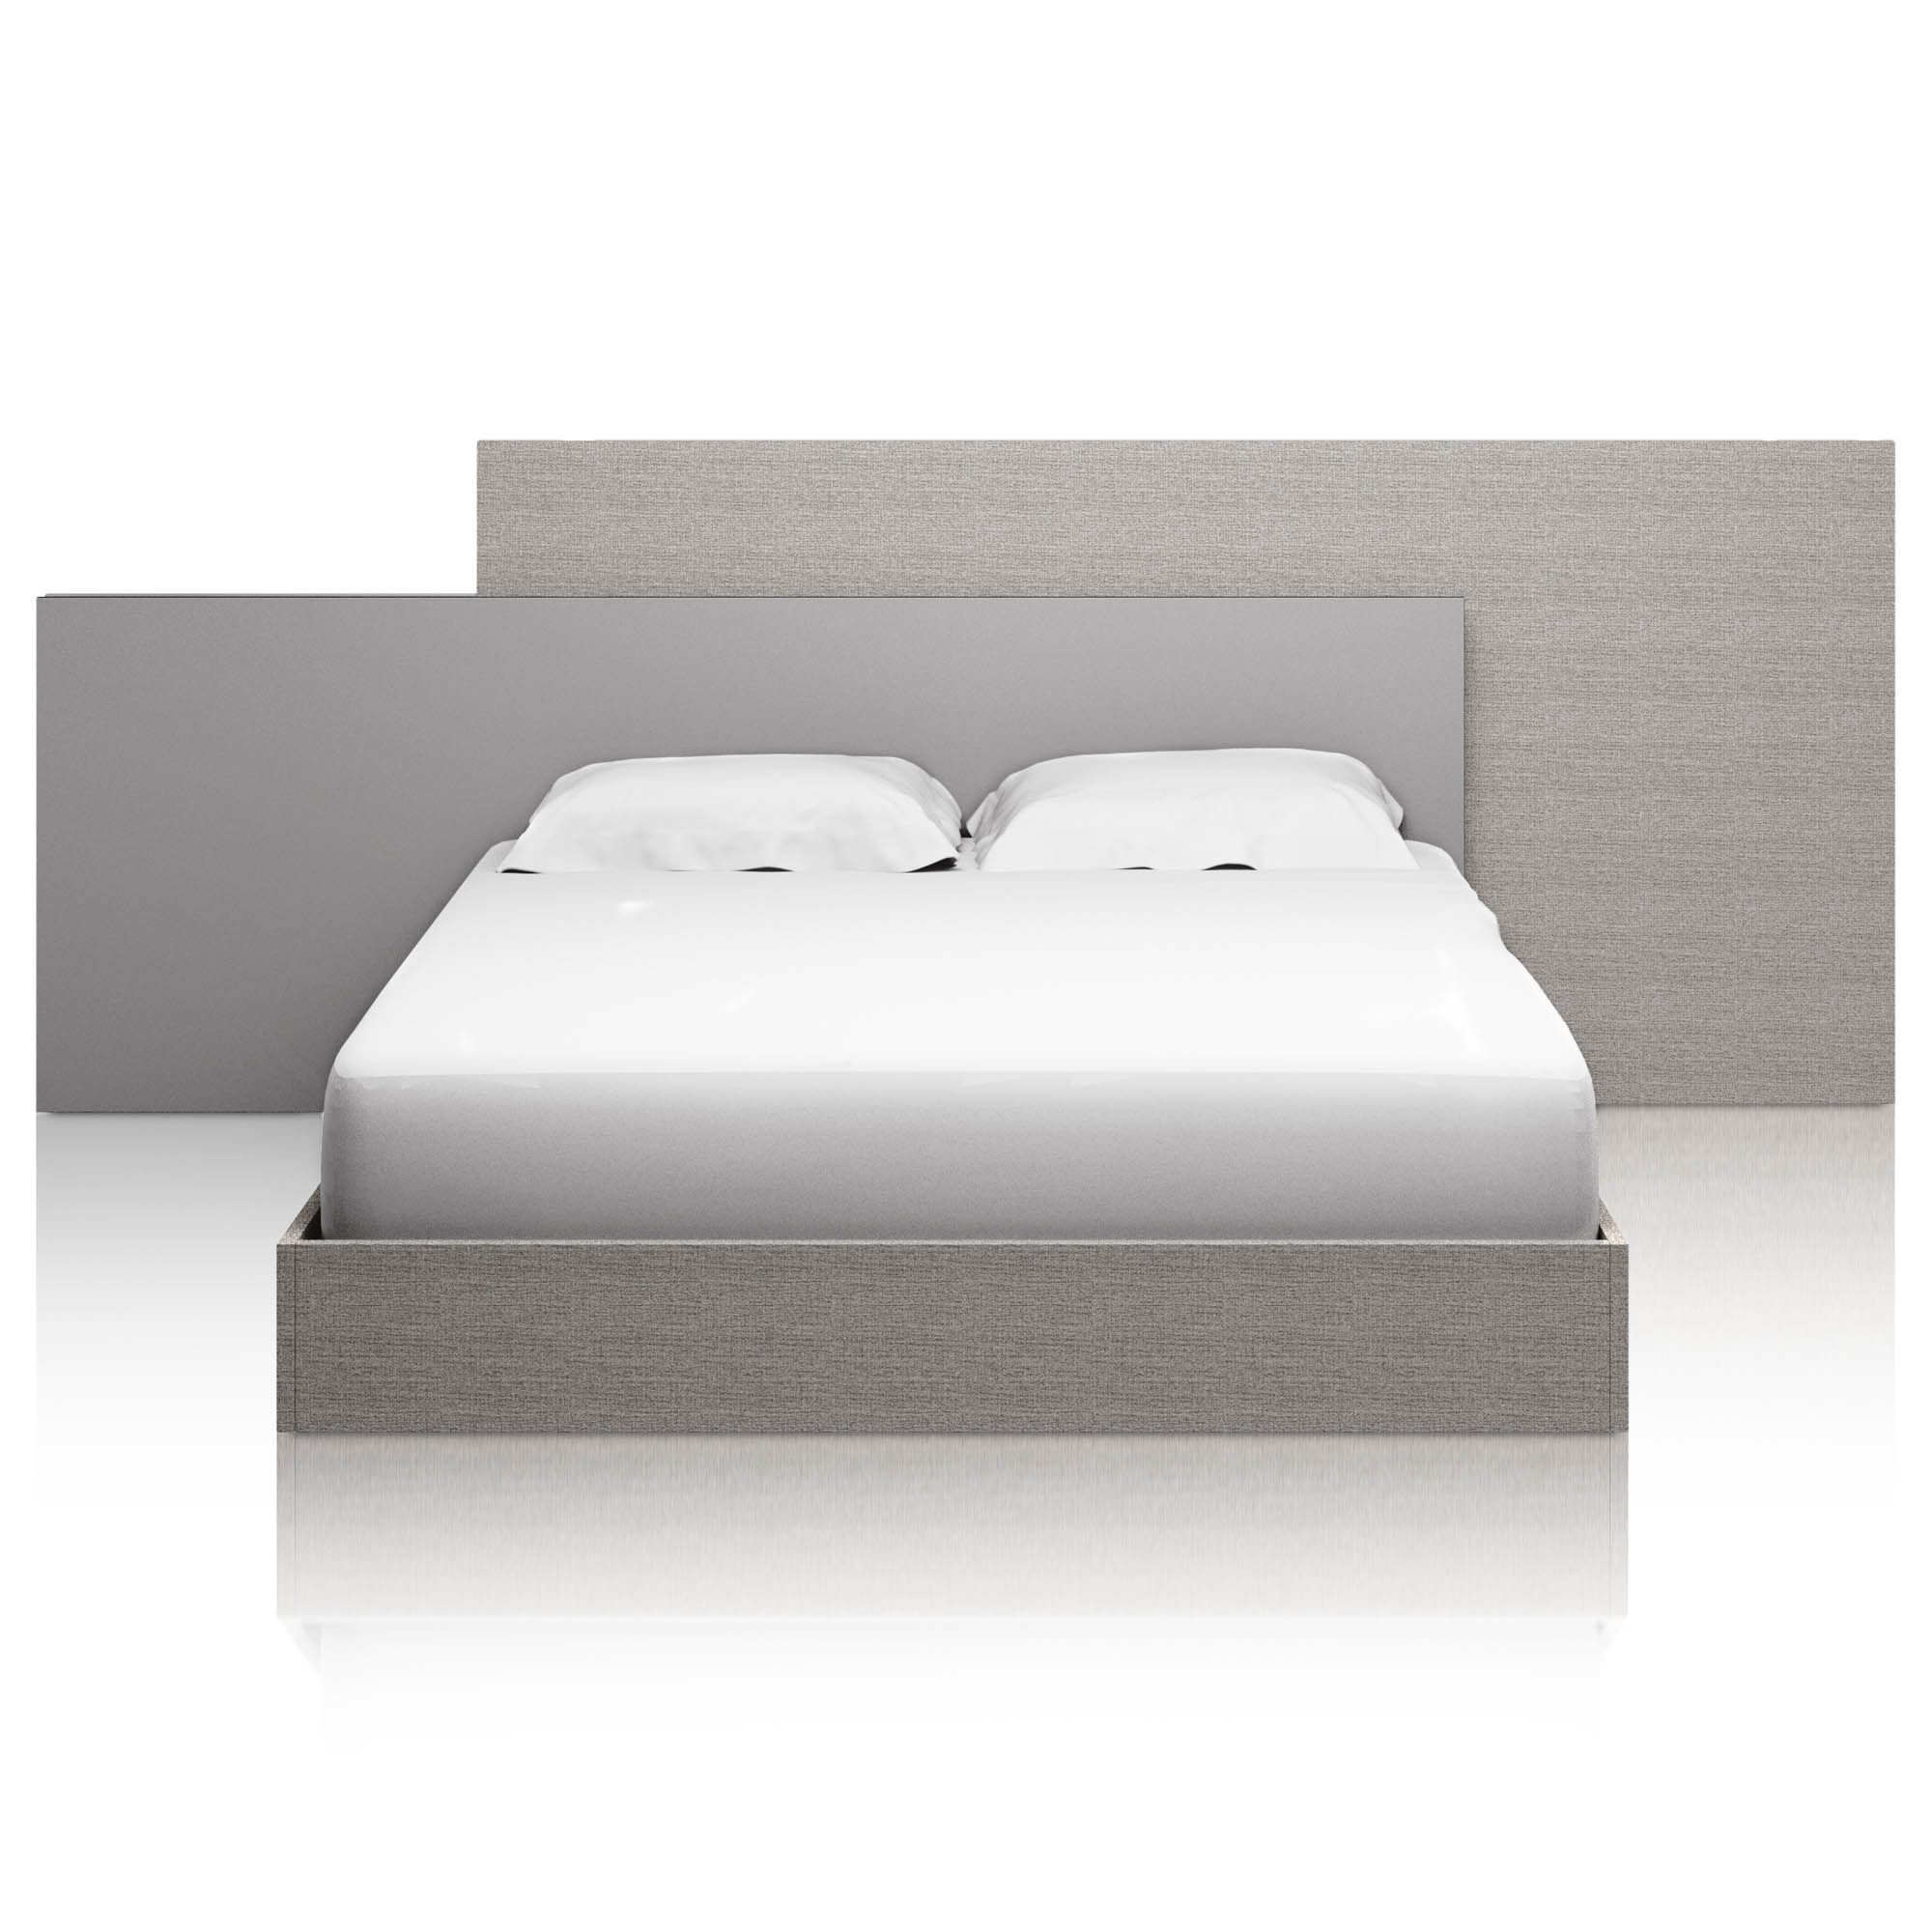 Forte Bed Matte Gray Oak Queen In 2020 Bed Cal King Bedding Grey Oak